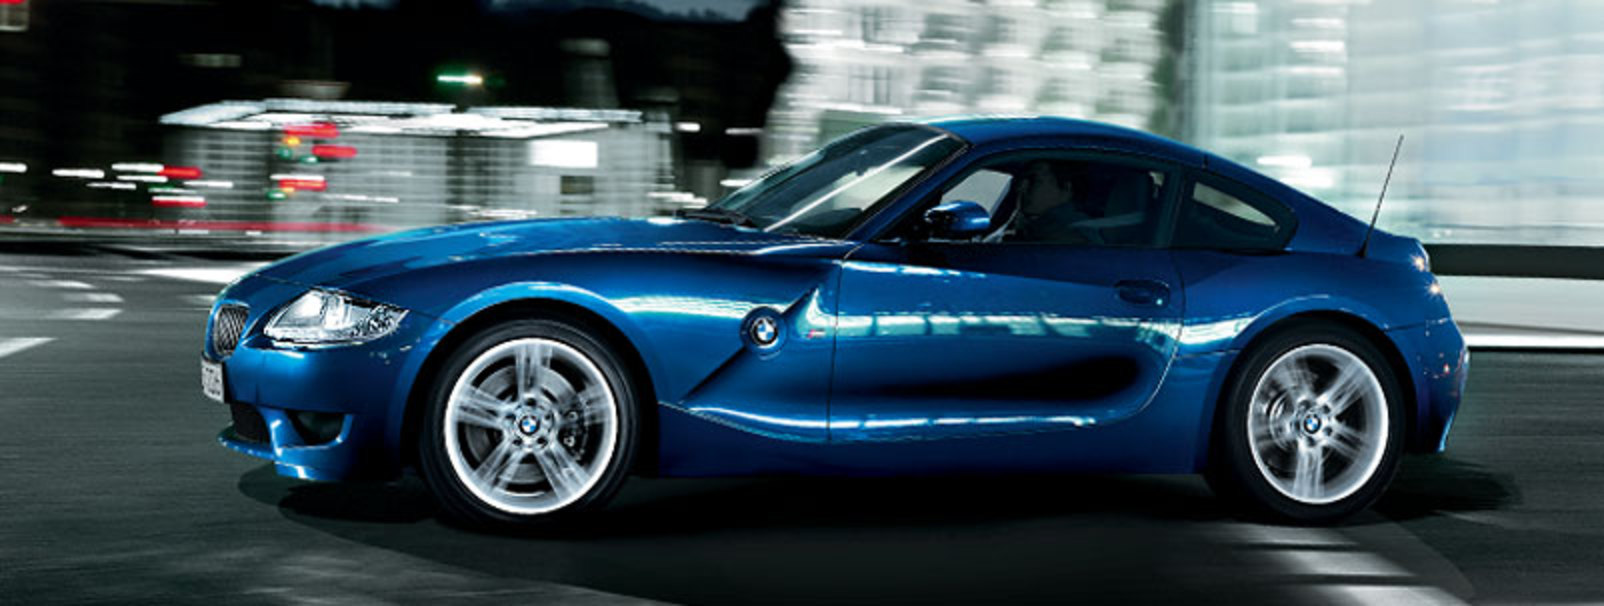 Even when stationary, the design of BMW Z4 M Coupé still resonates with